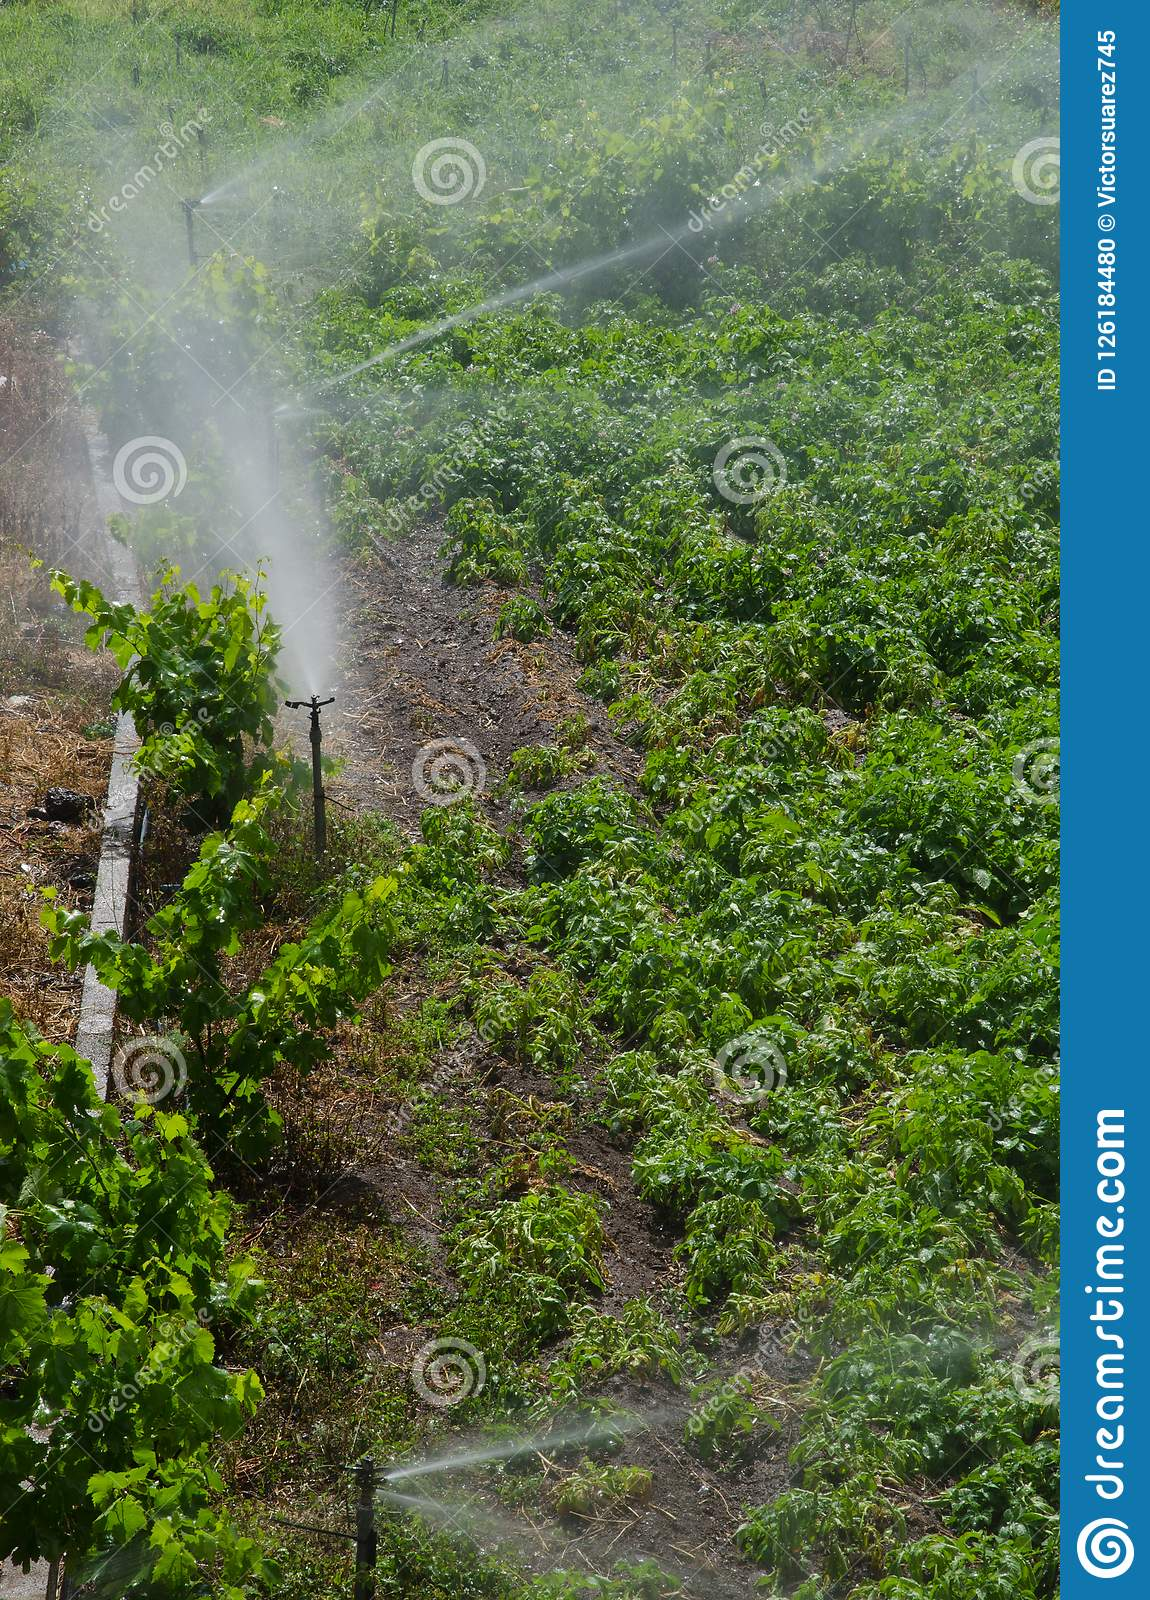 Irrigation of a potatoes cultivation.